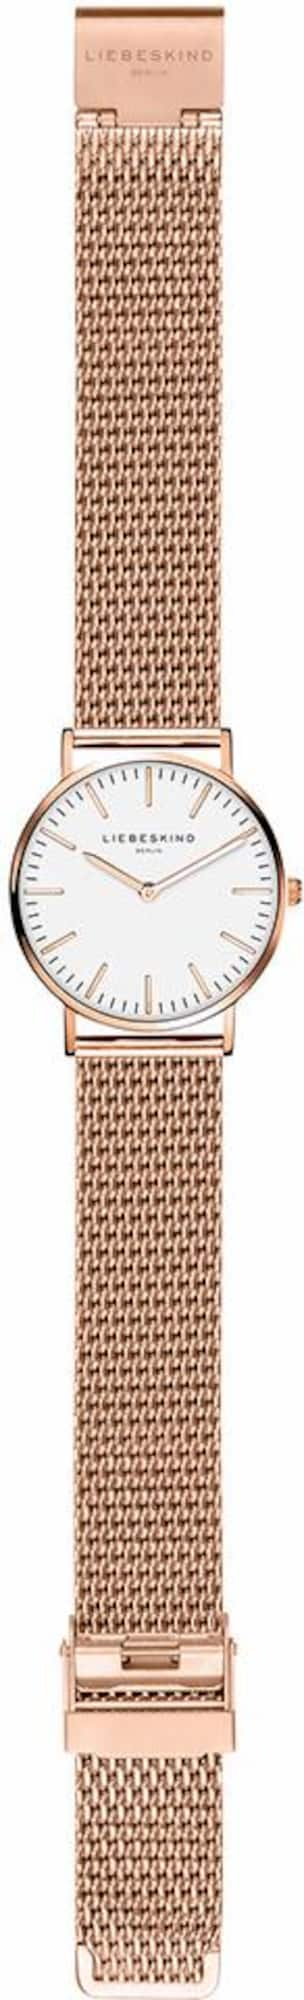 Liebeskind Berlin, Damen Analoog horloge New Case, LT-0077-MQ, rose-goud